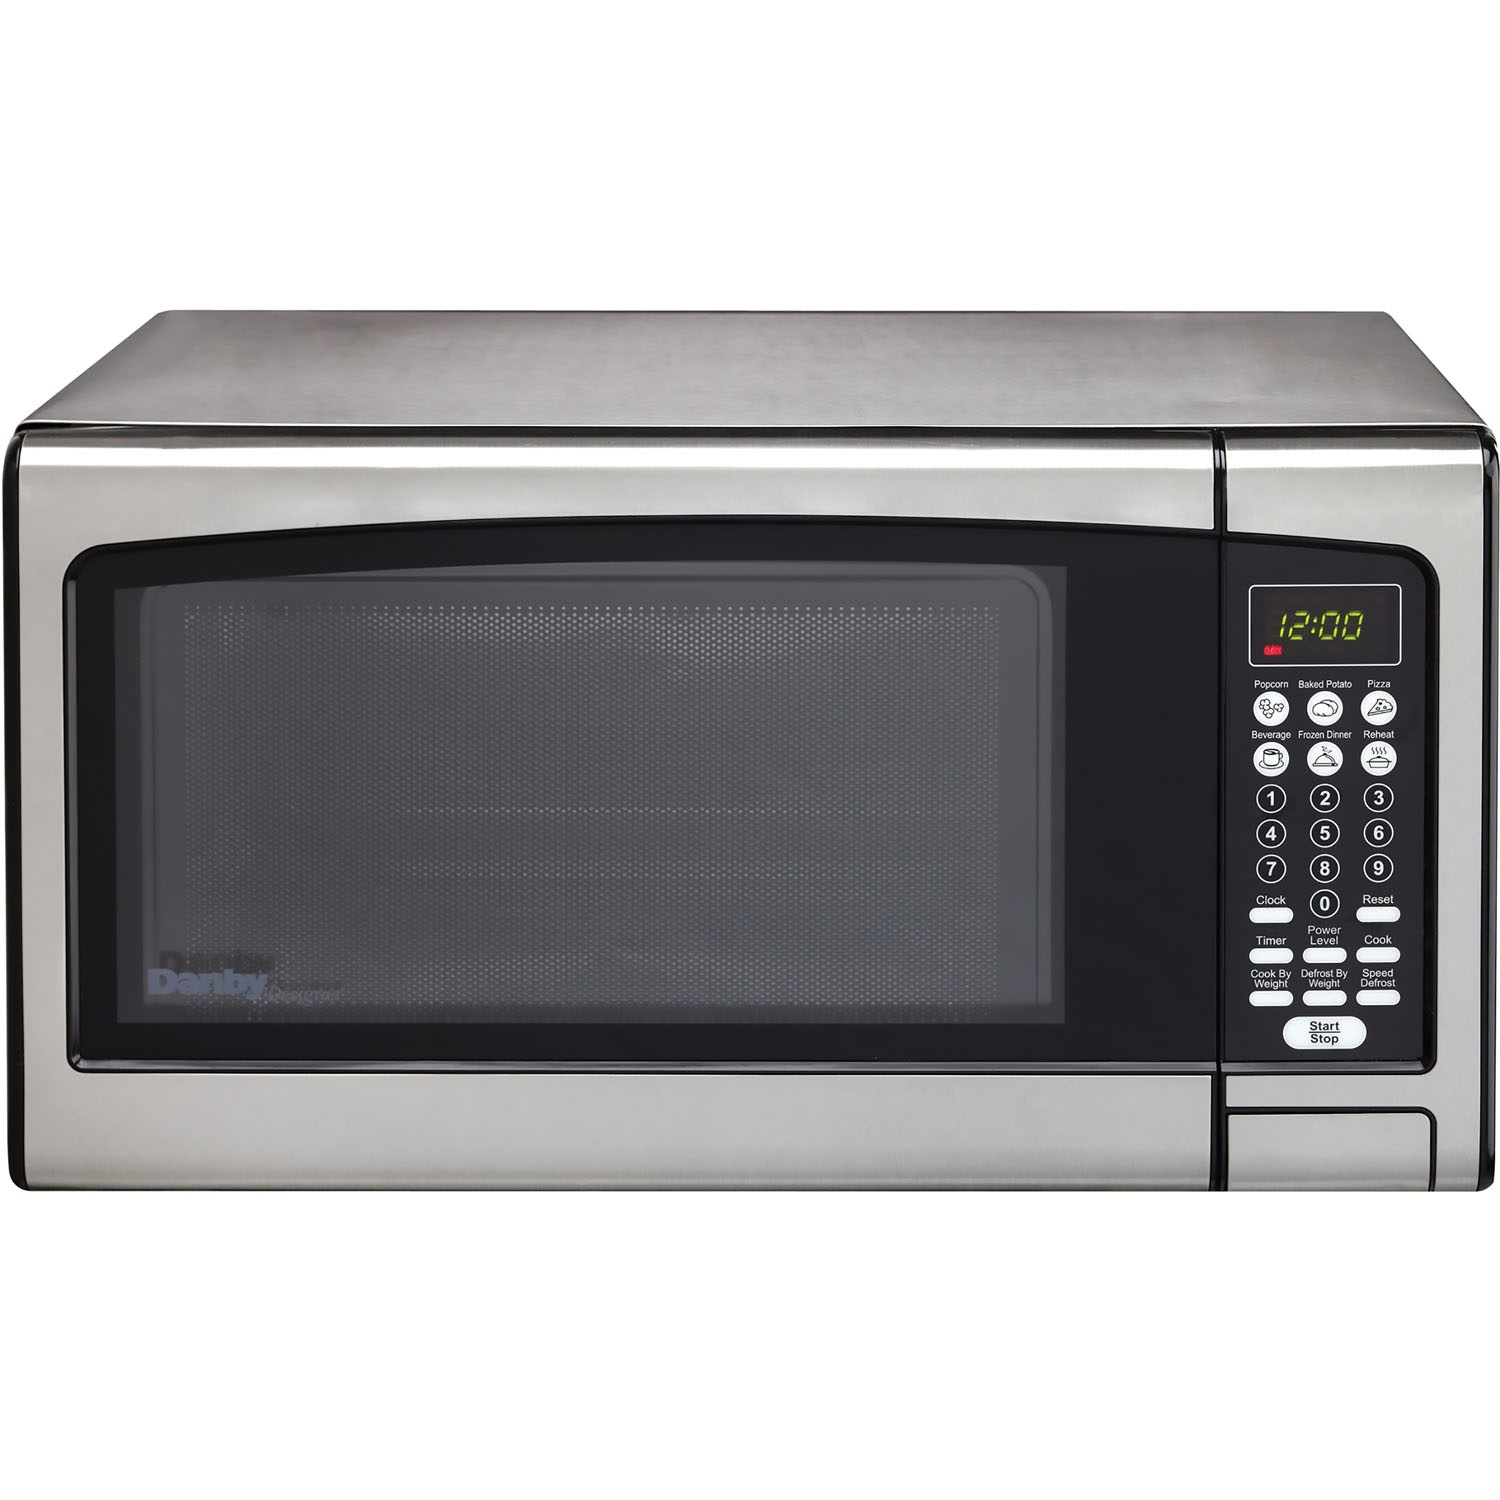 Danby designer 1 1 cu ft microwave oven in stainless for Luxury oven